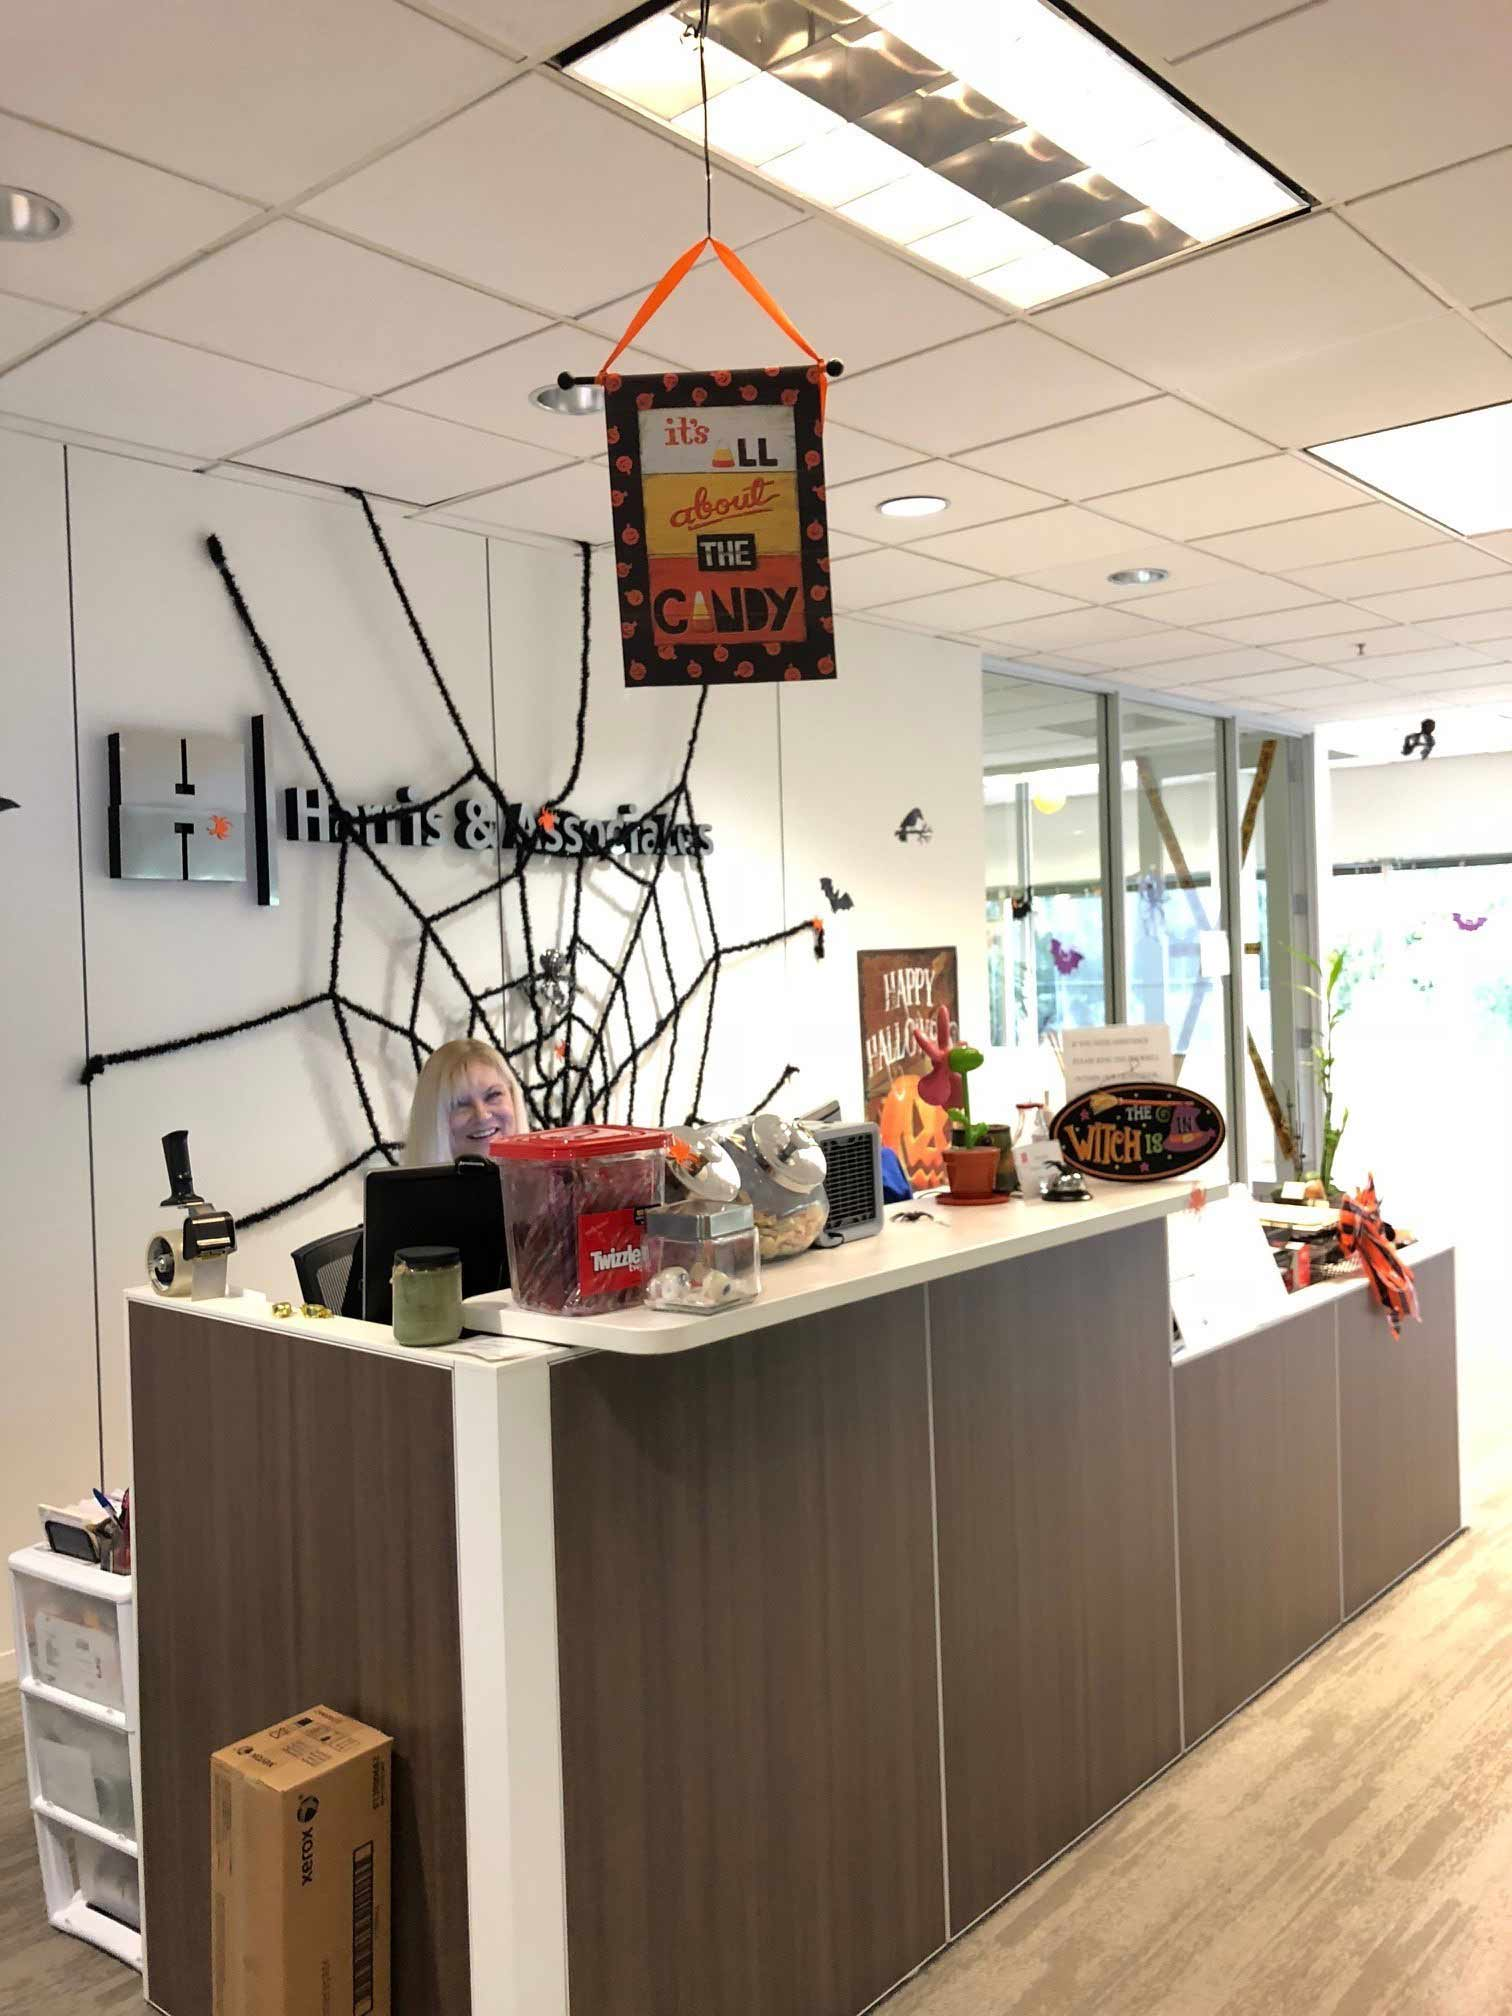 Our employee owners get into different holidays and events with office decorations.